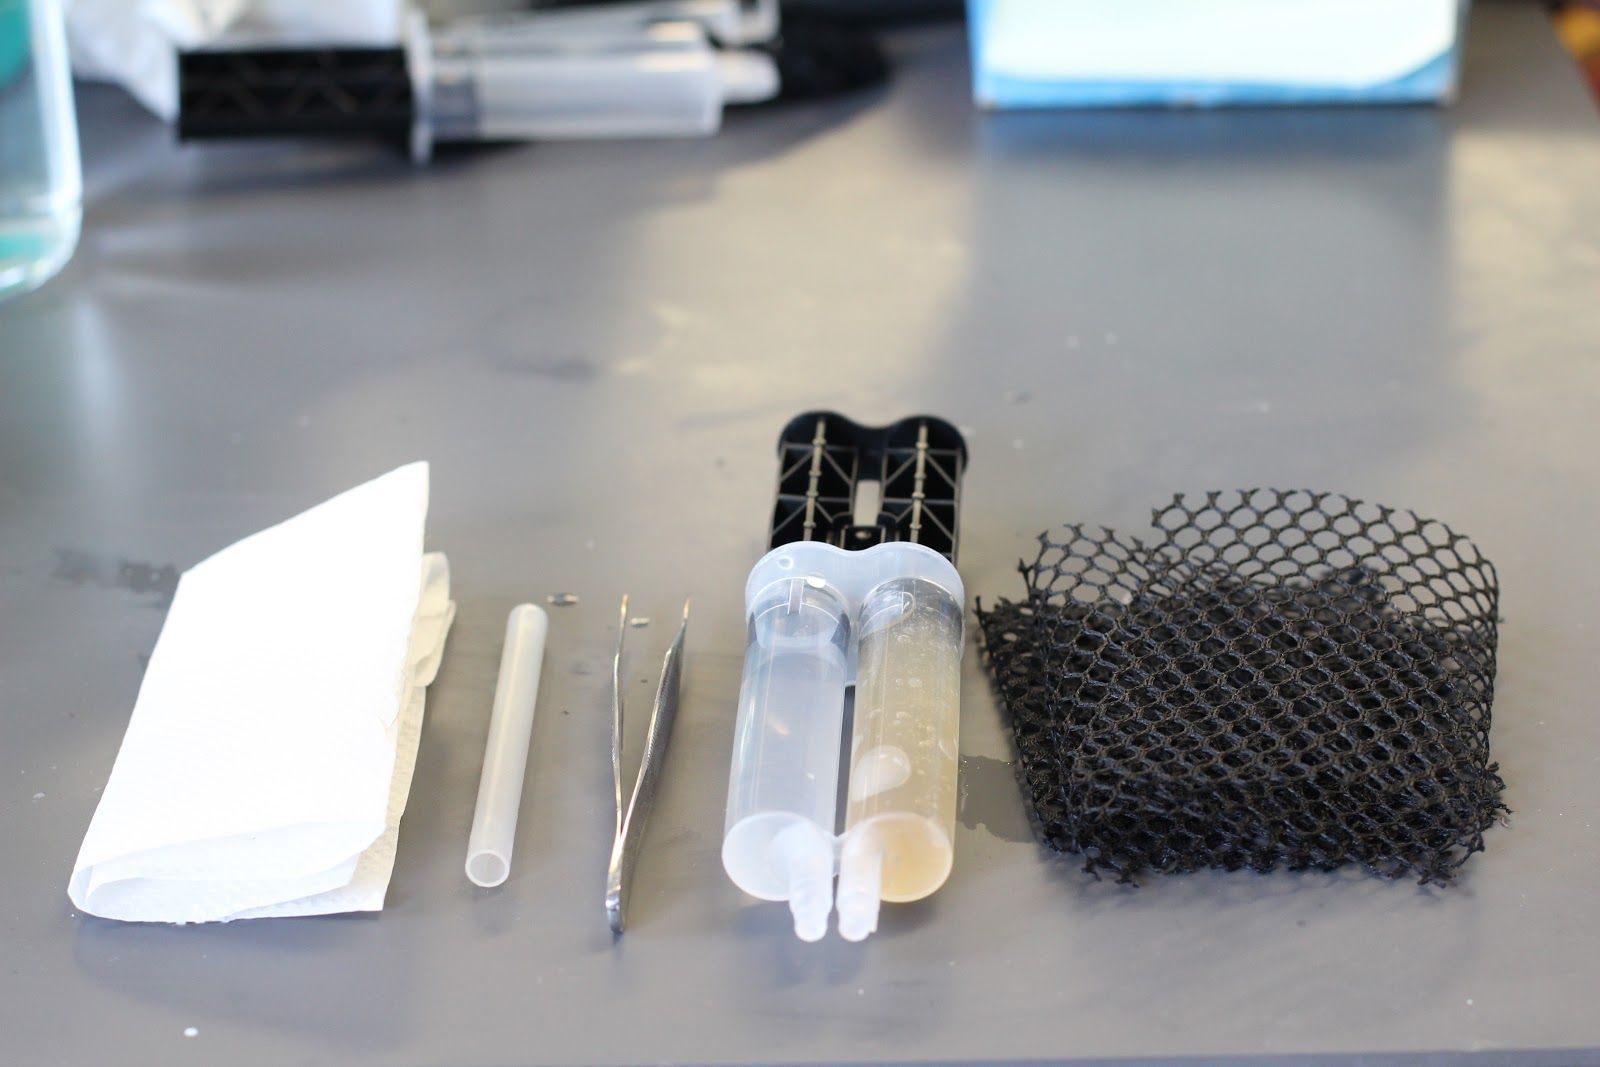 A photo of the GelAid components, including a tube, dual tubes with liquid in one and gel in the other, tweezers, and a black netting